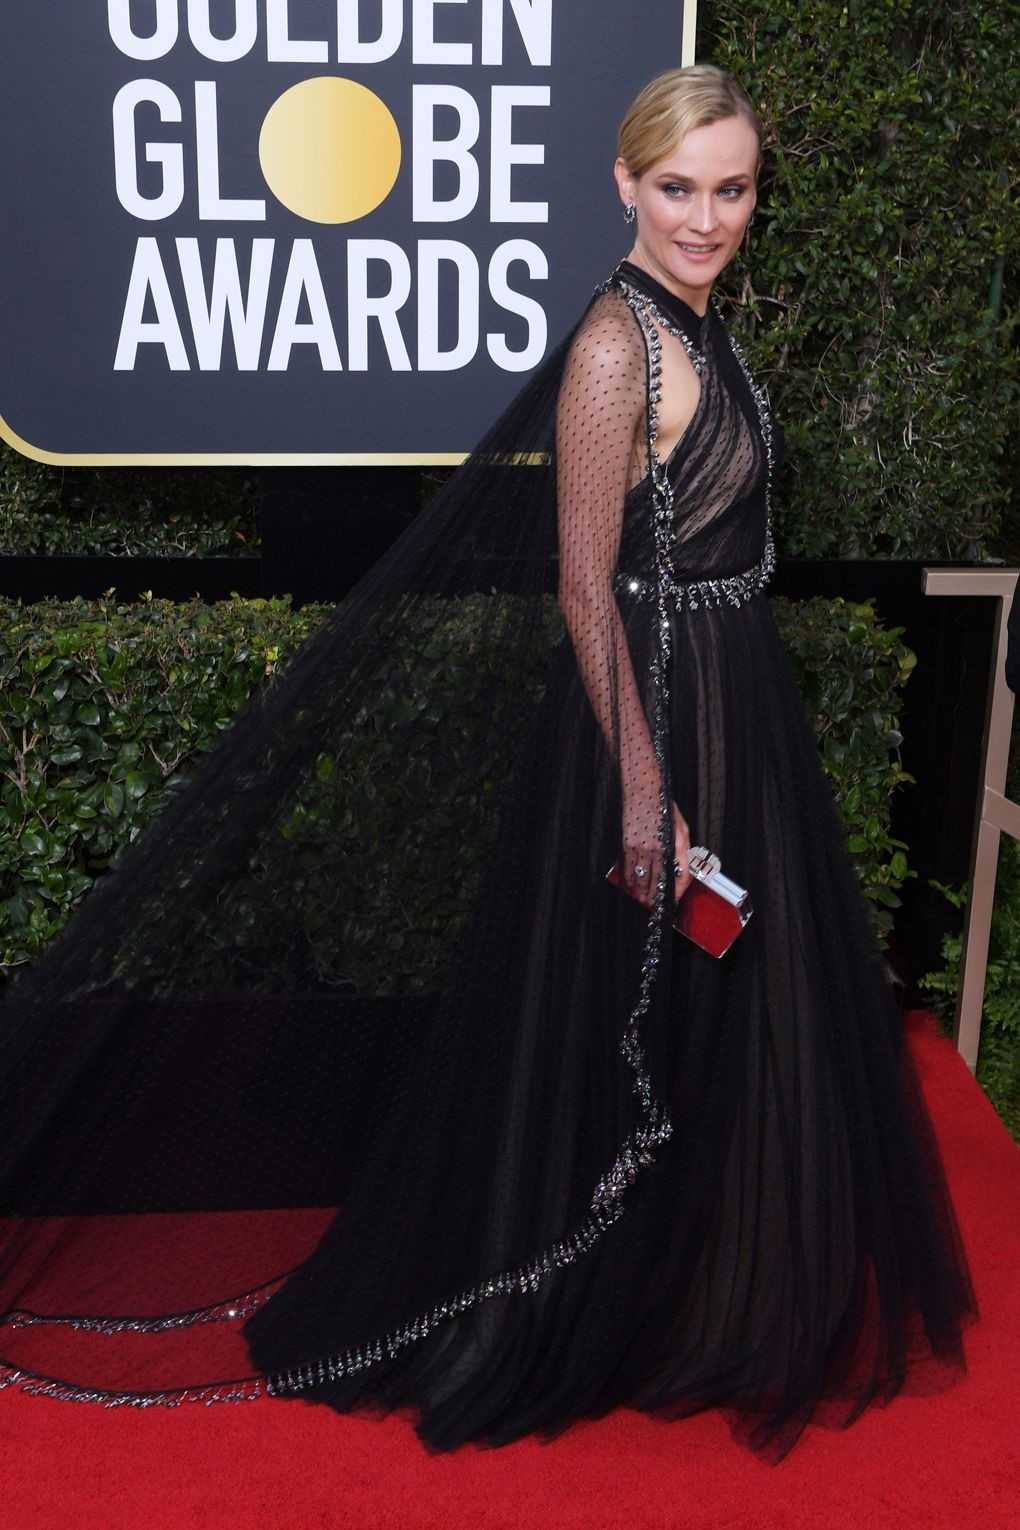 Diana Kruger stood out in Prada Gown making her look like the queen of the red carpet. golden globes 2018 JD's top 13 red carpet looks of Golden Globes 2018 11